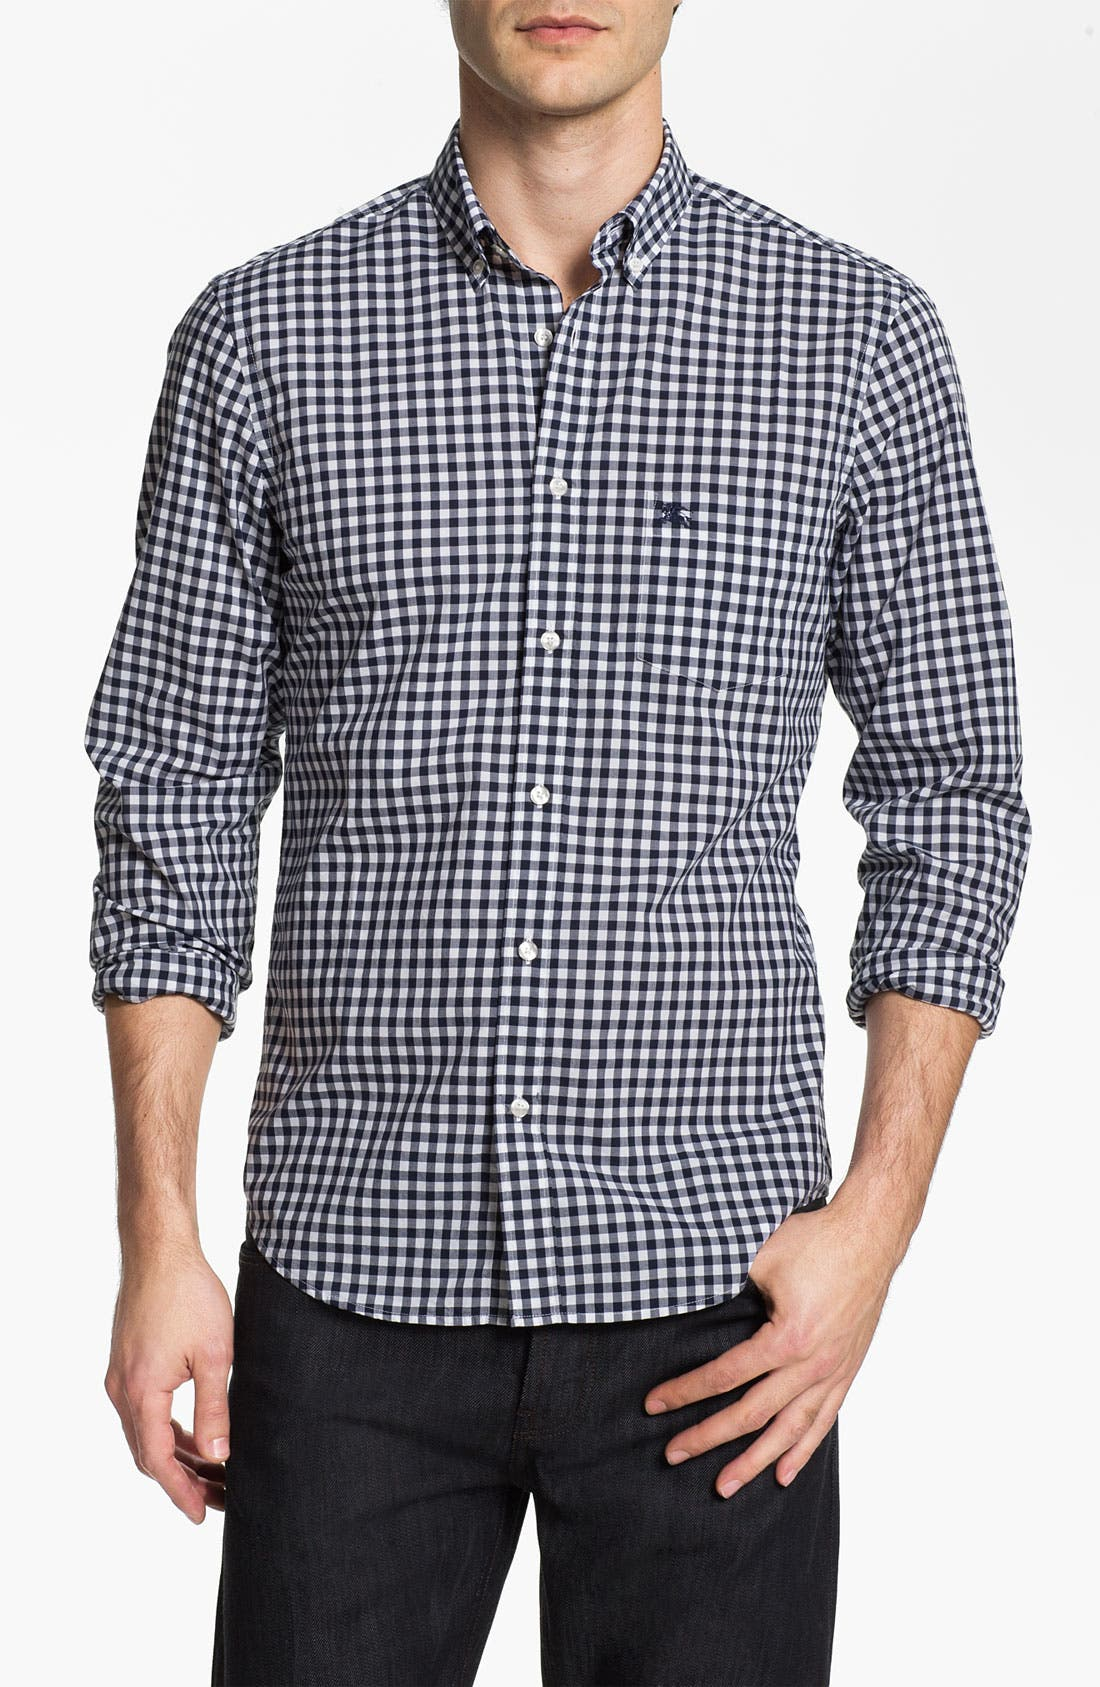 Alternate Image 1 Selected - Burberry Brit Gingham Check Sport Shirt